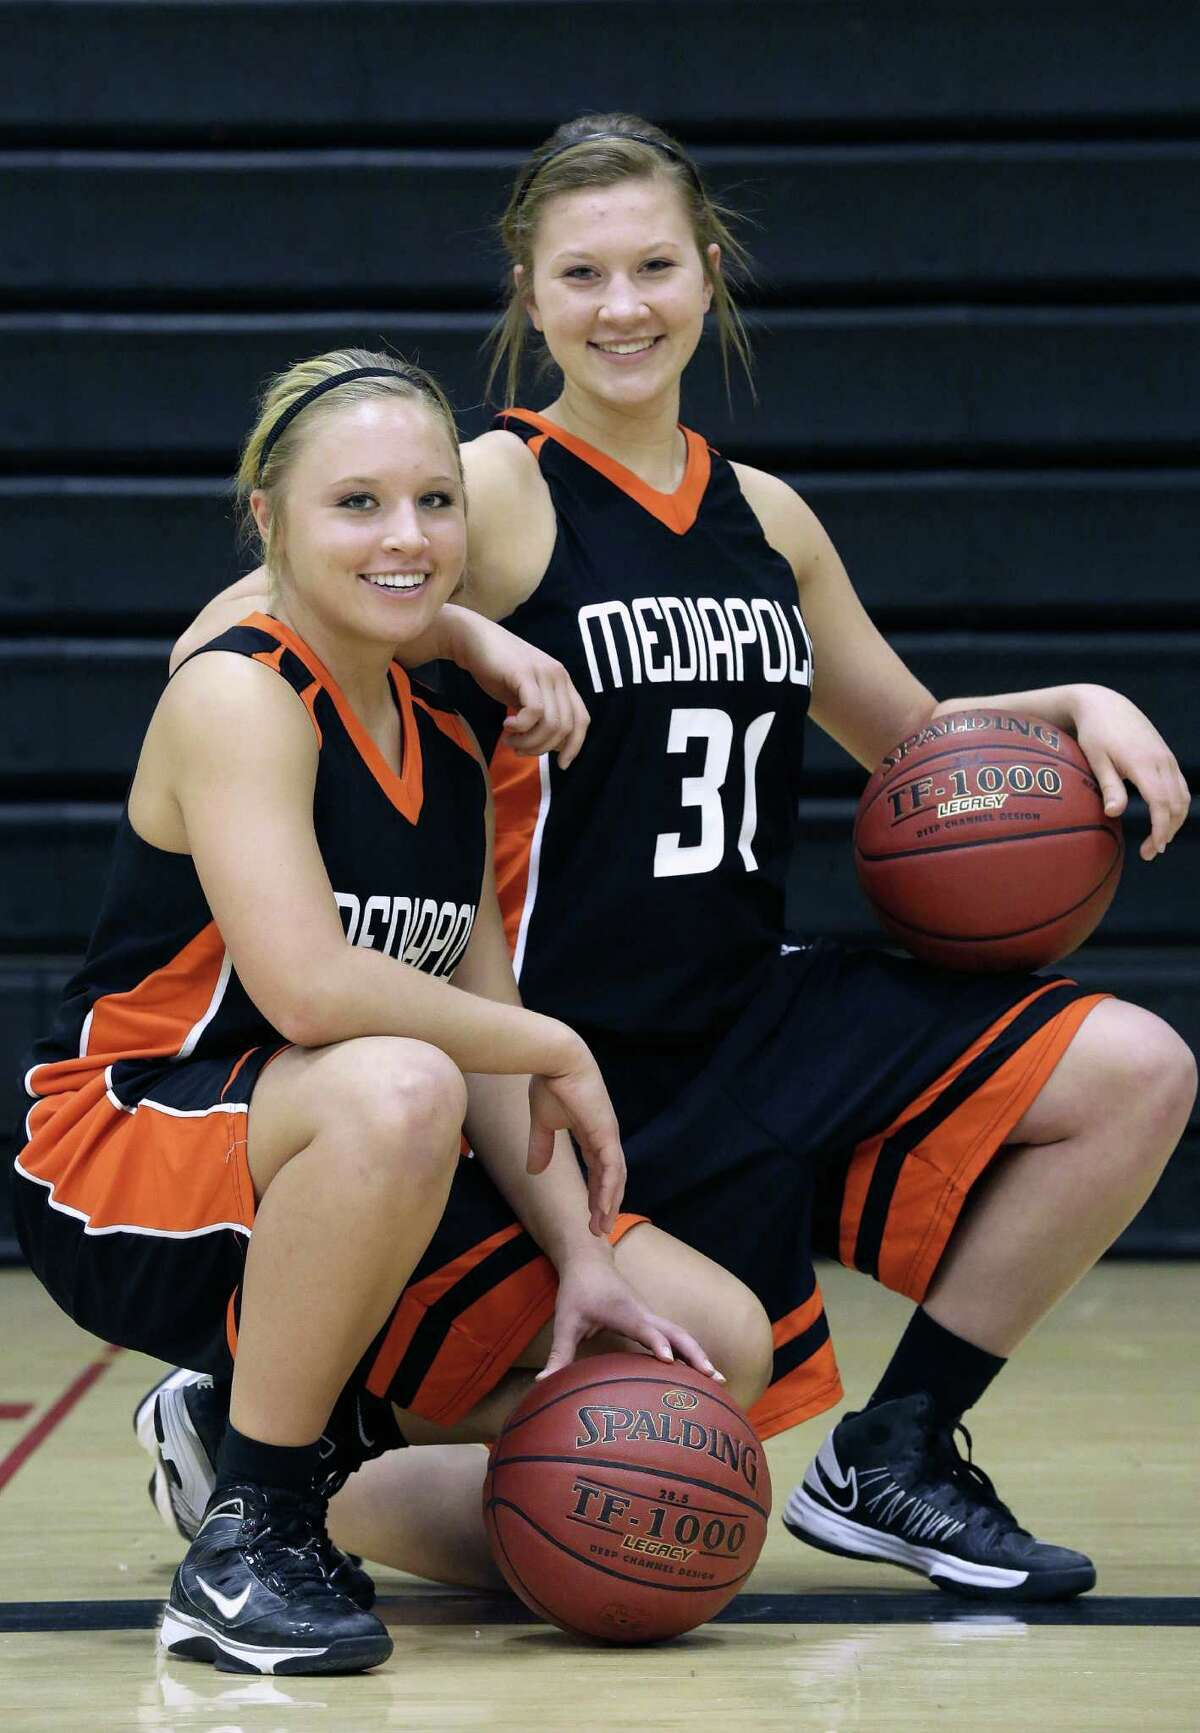 In this Feb. 1, 2013 photo, Mediapolis High School Girls Basketball team players Allison Hedges, left, and her sister Ashley Hedges, right, pose for a photo in Mediapolis, Iowa. The dynamic of one of Iowa's best high school basketball teams is defined by an extraordinary coincidence of five sets of sisters. (AP Photo/Seth Perlman)